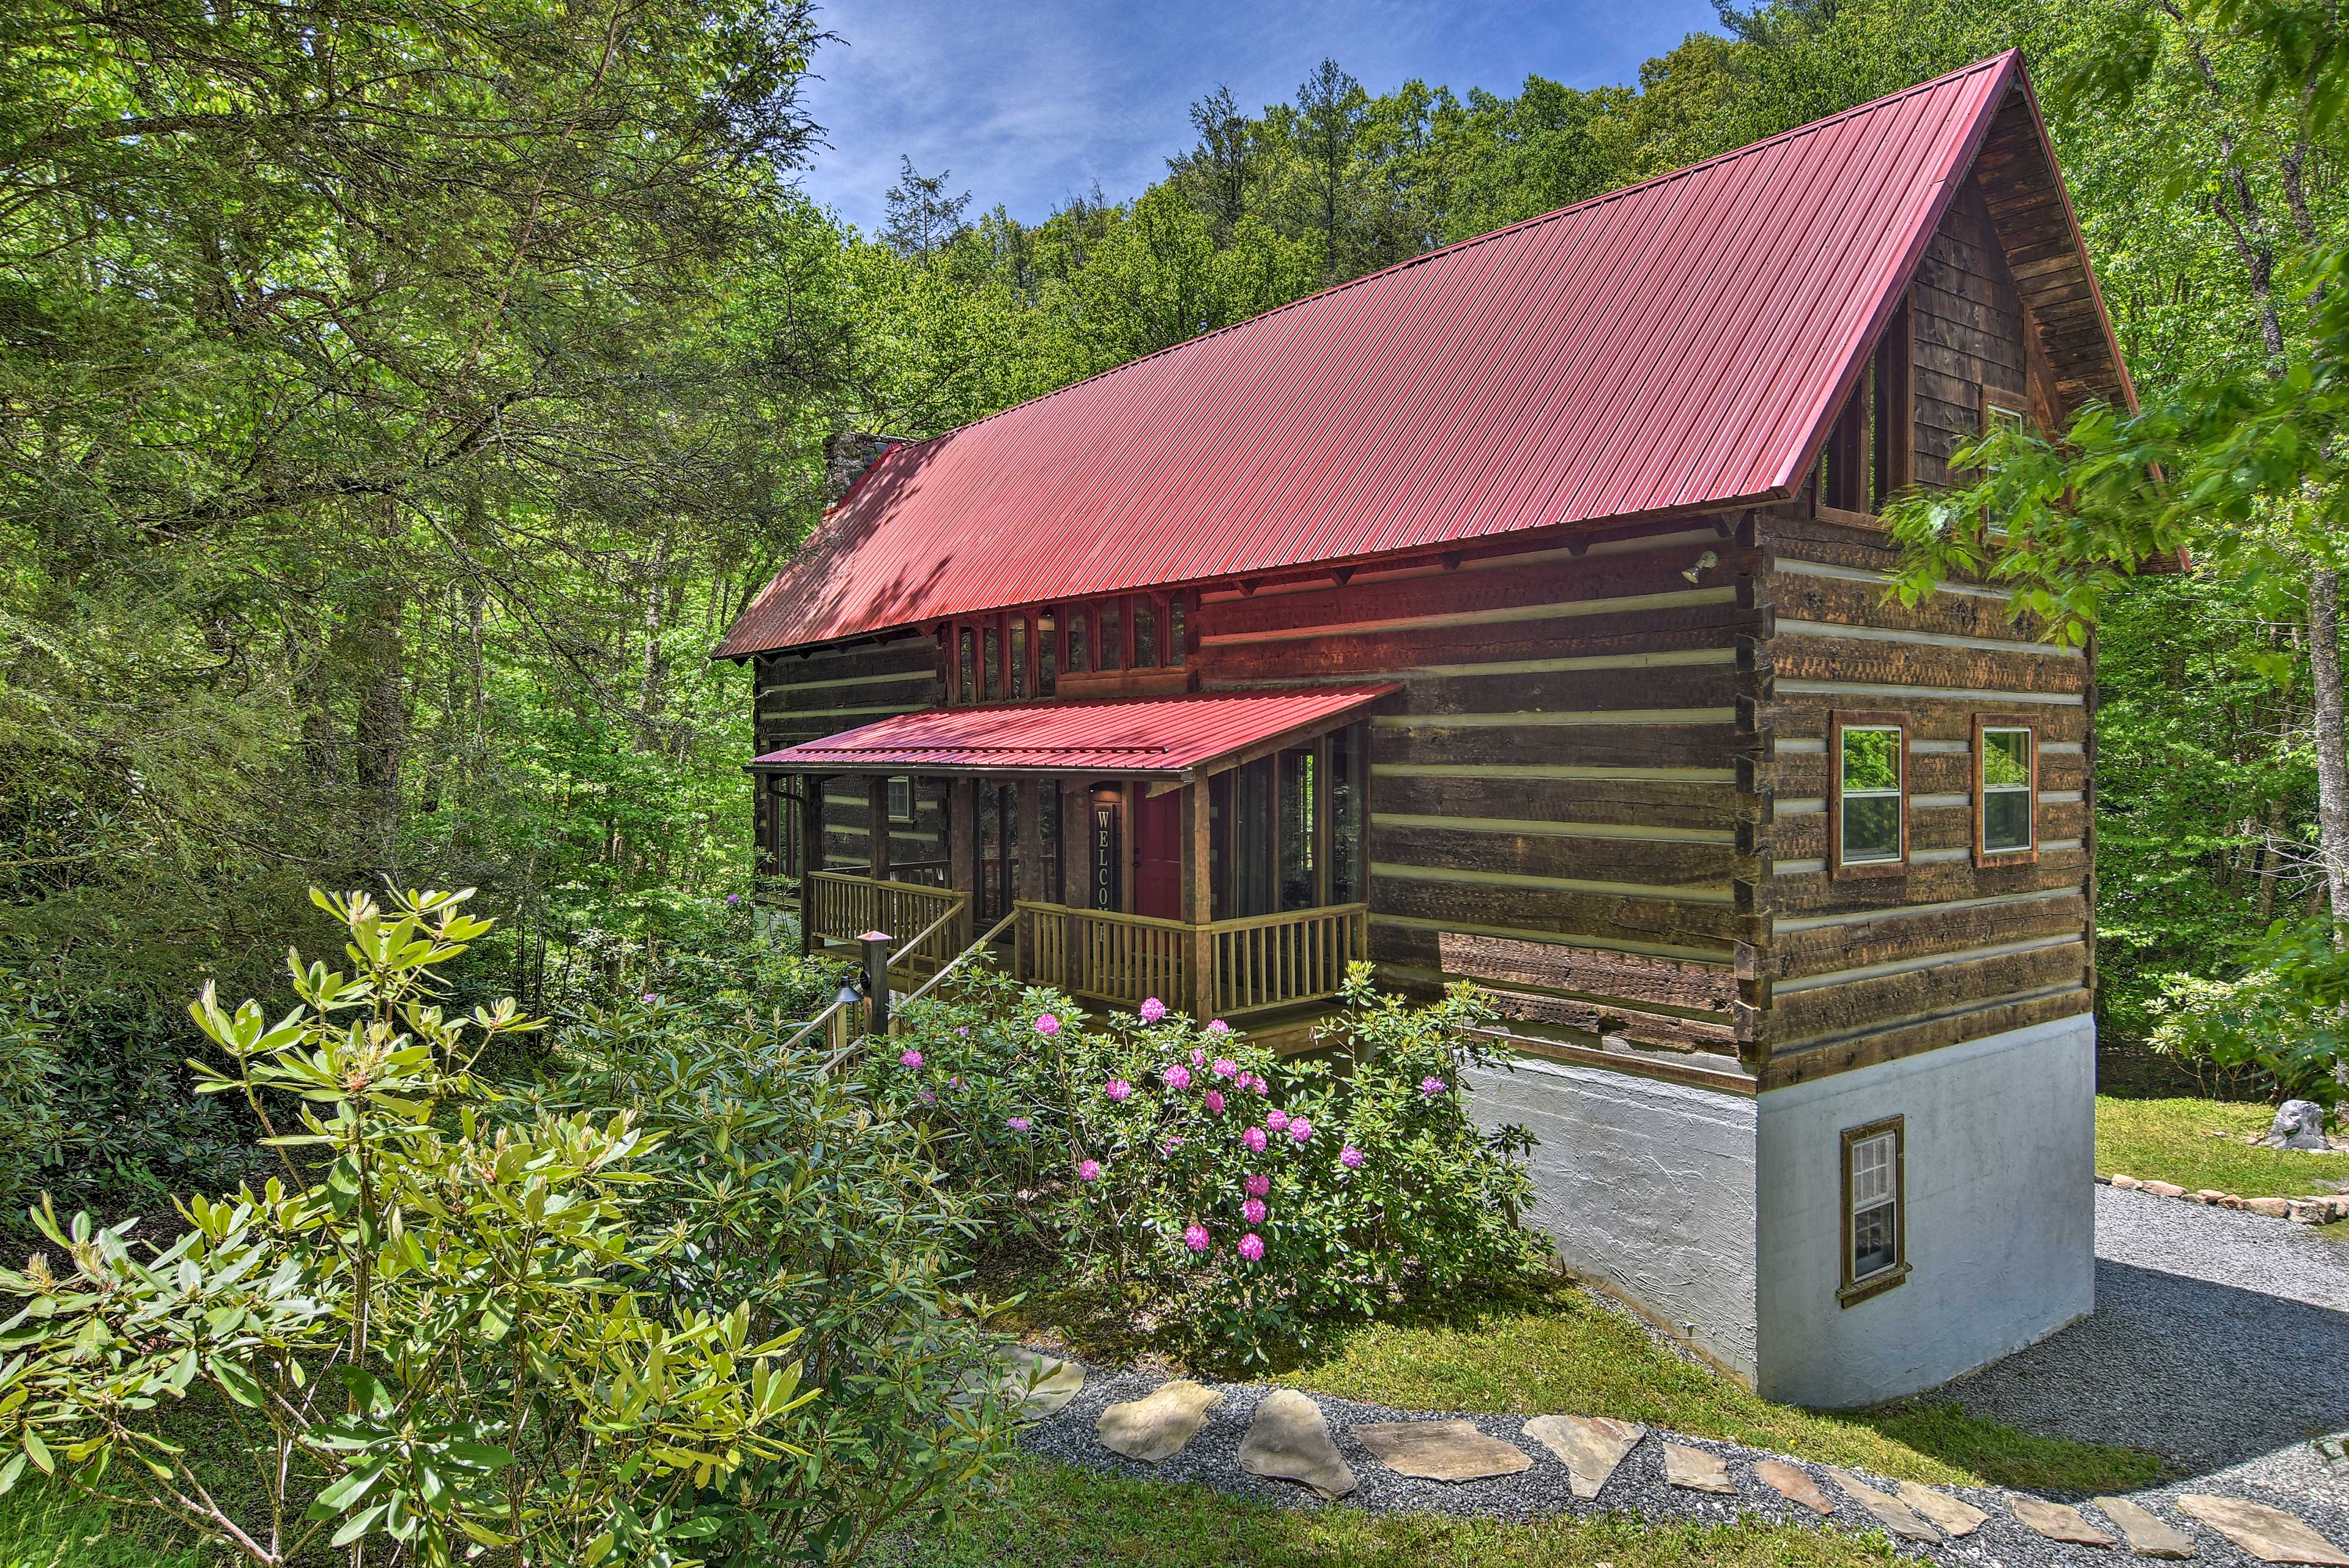 Welcome to the 'Red Door Cabin' located in Newland, North Carolina!